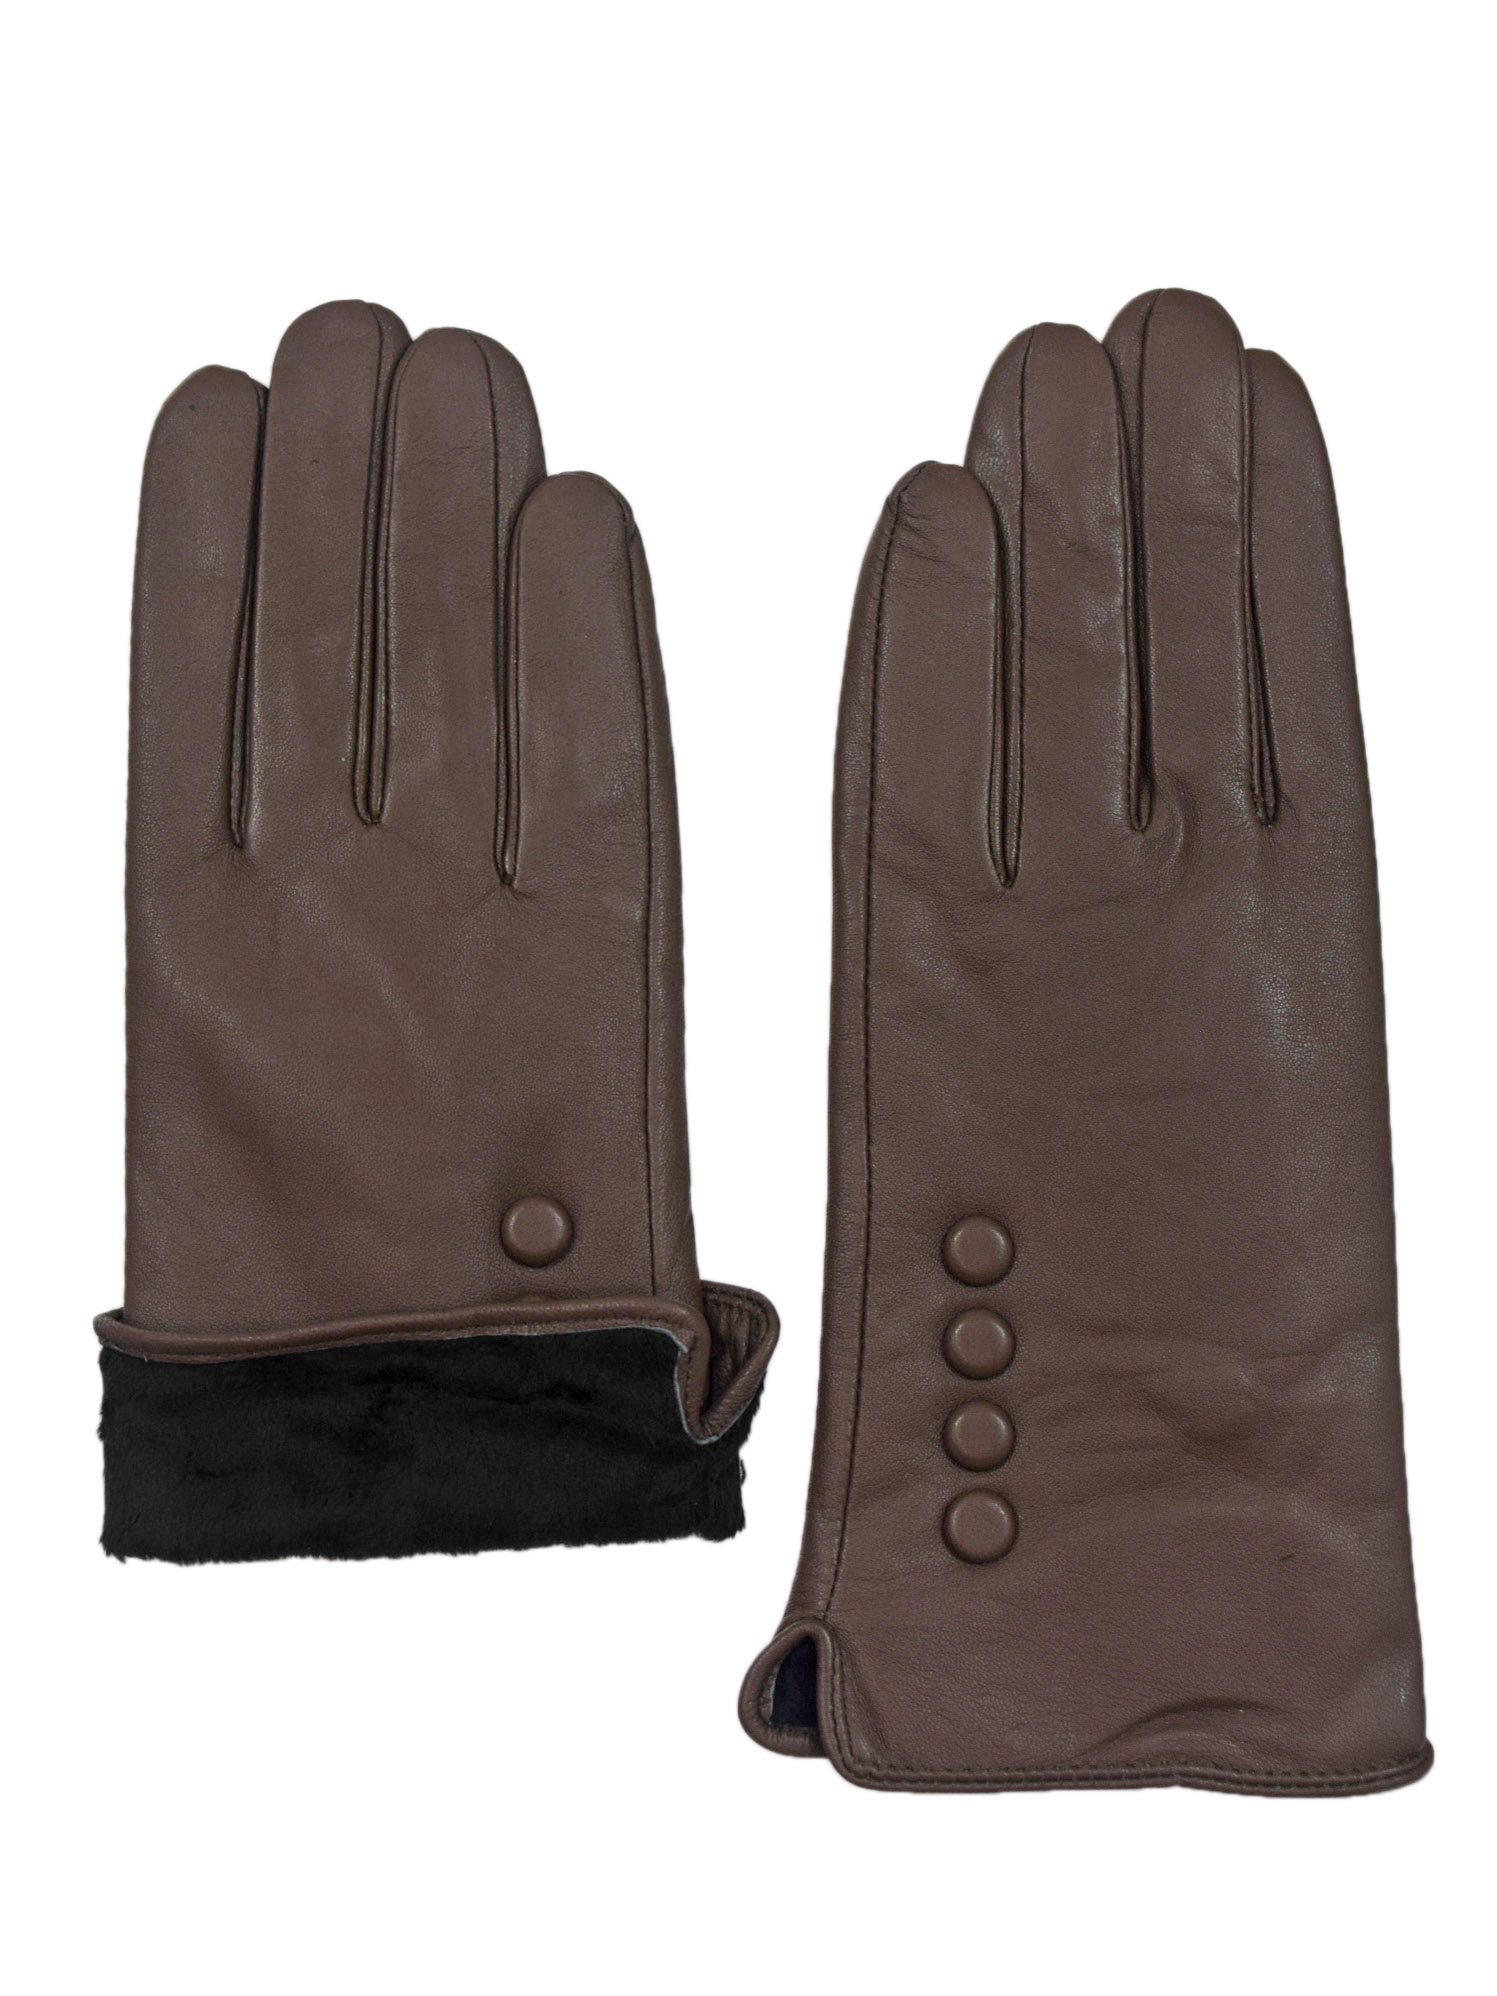 Giromy-Samoni-Womens-Warm-Winter-Plush-Lined-Leather-Driving-Gloves-Taupe thumbnail 10